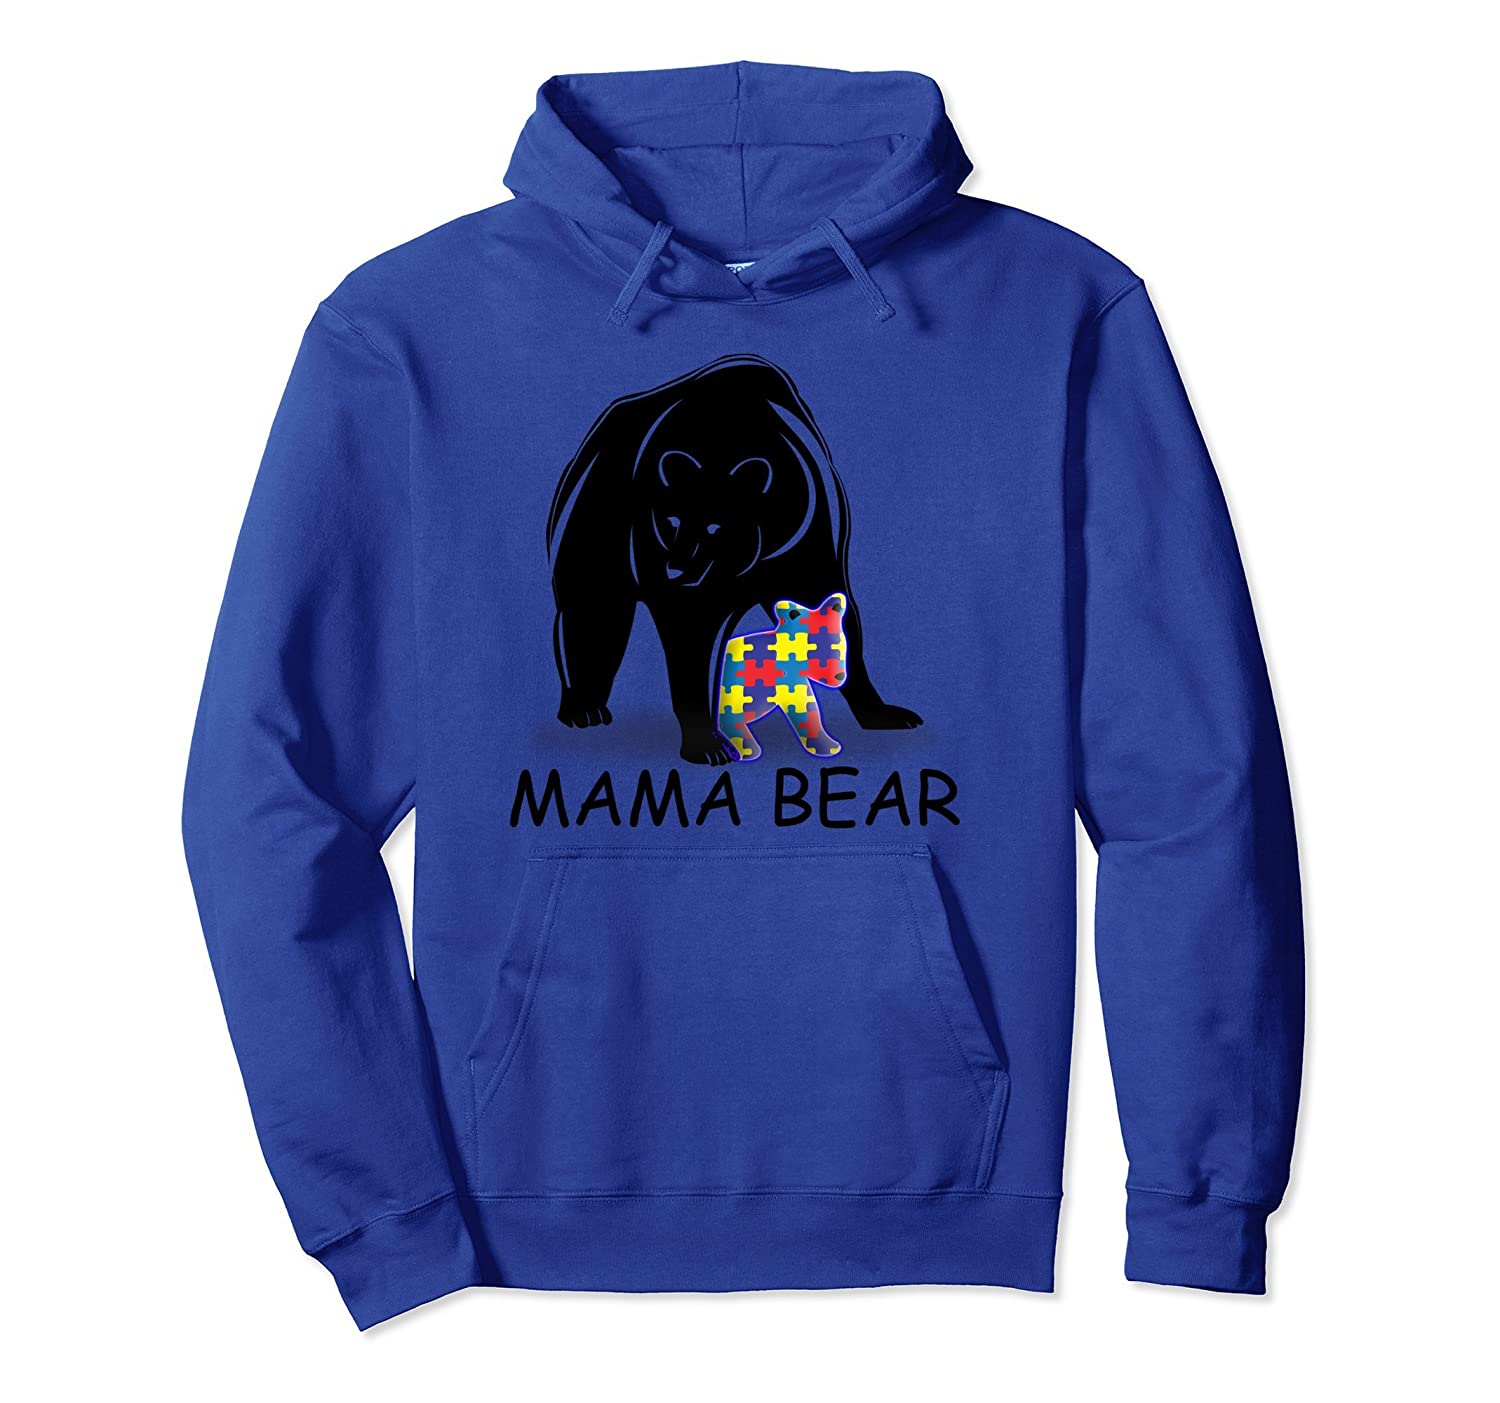 Autism Awareness Shirts - Mama Bear Pullover Hoodie-alottee gift